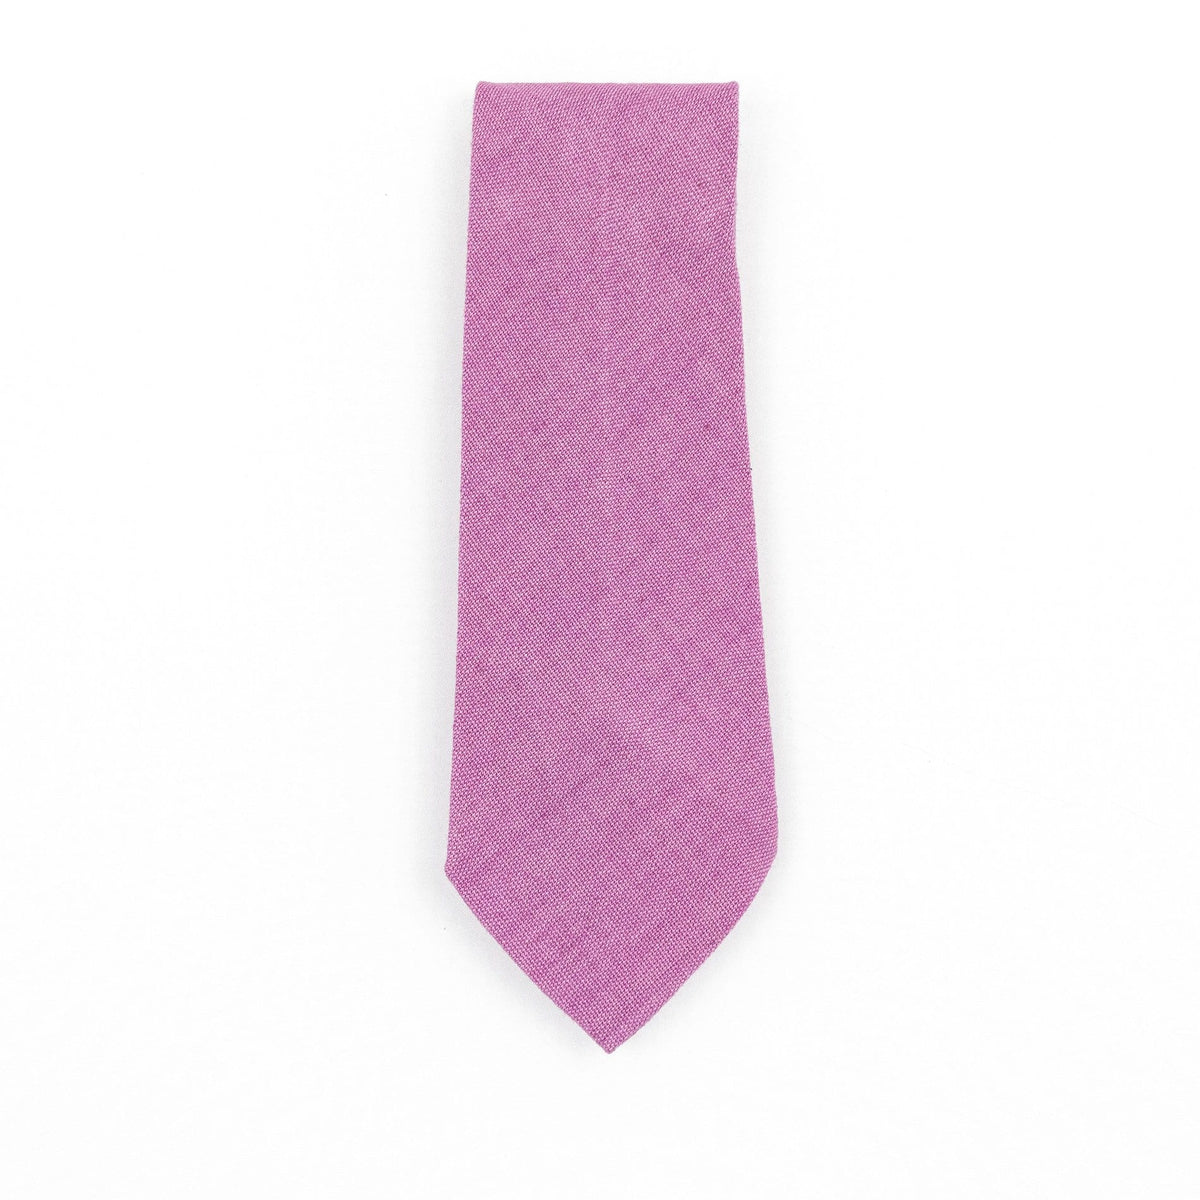 Fair Trade Guatemalan Cotton Tie Lavender